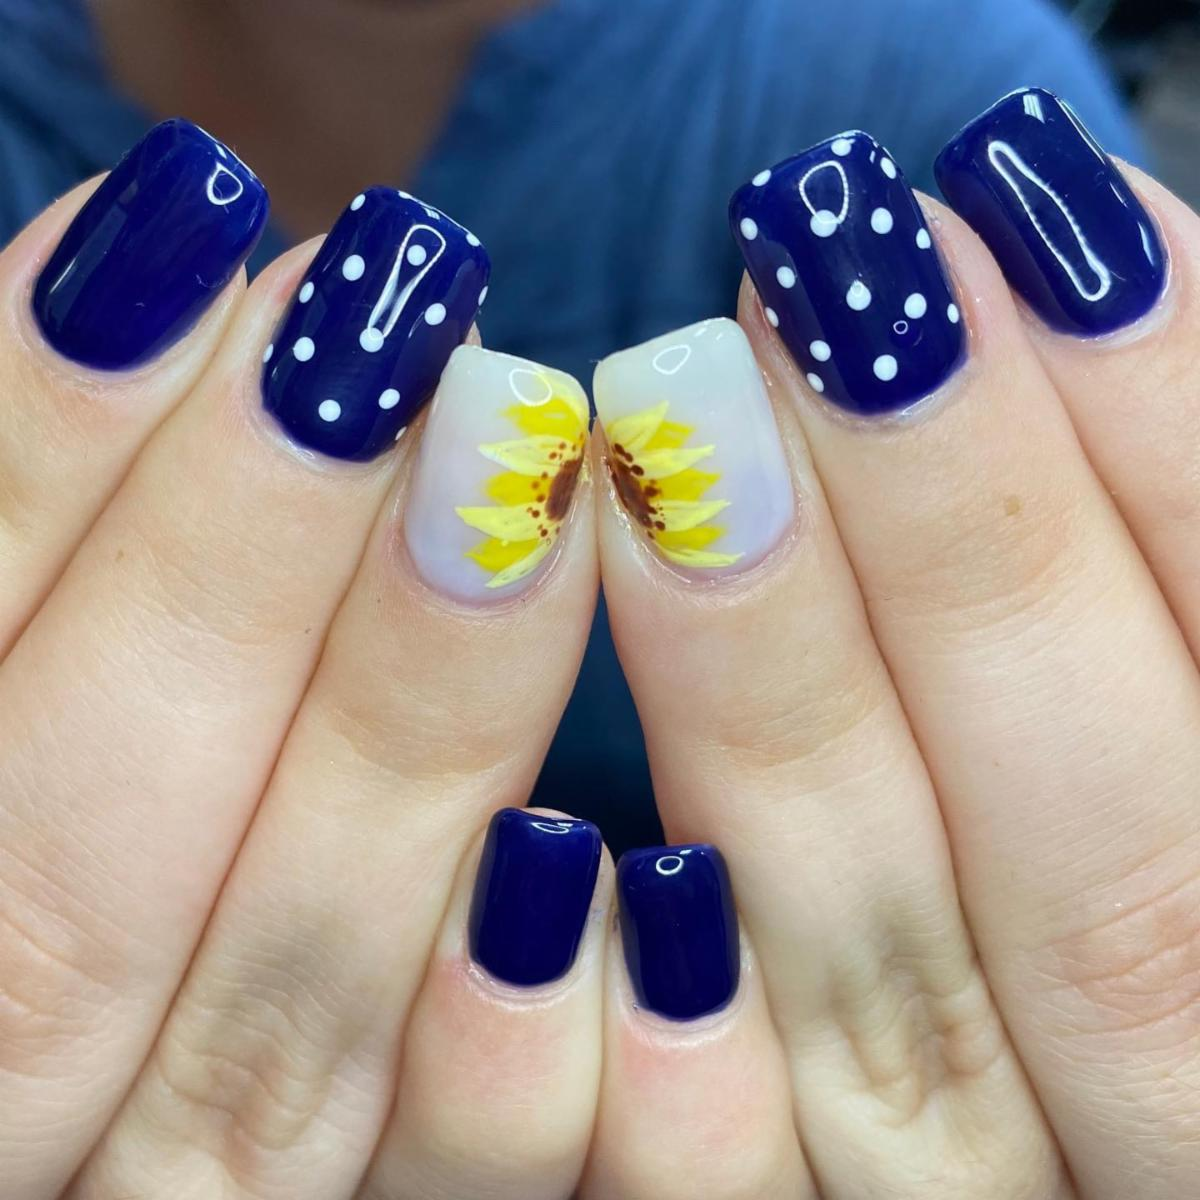 Complimentary Nail Kit with Nail Service valid through 5/31/20.